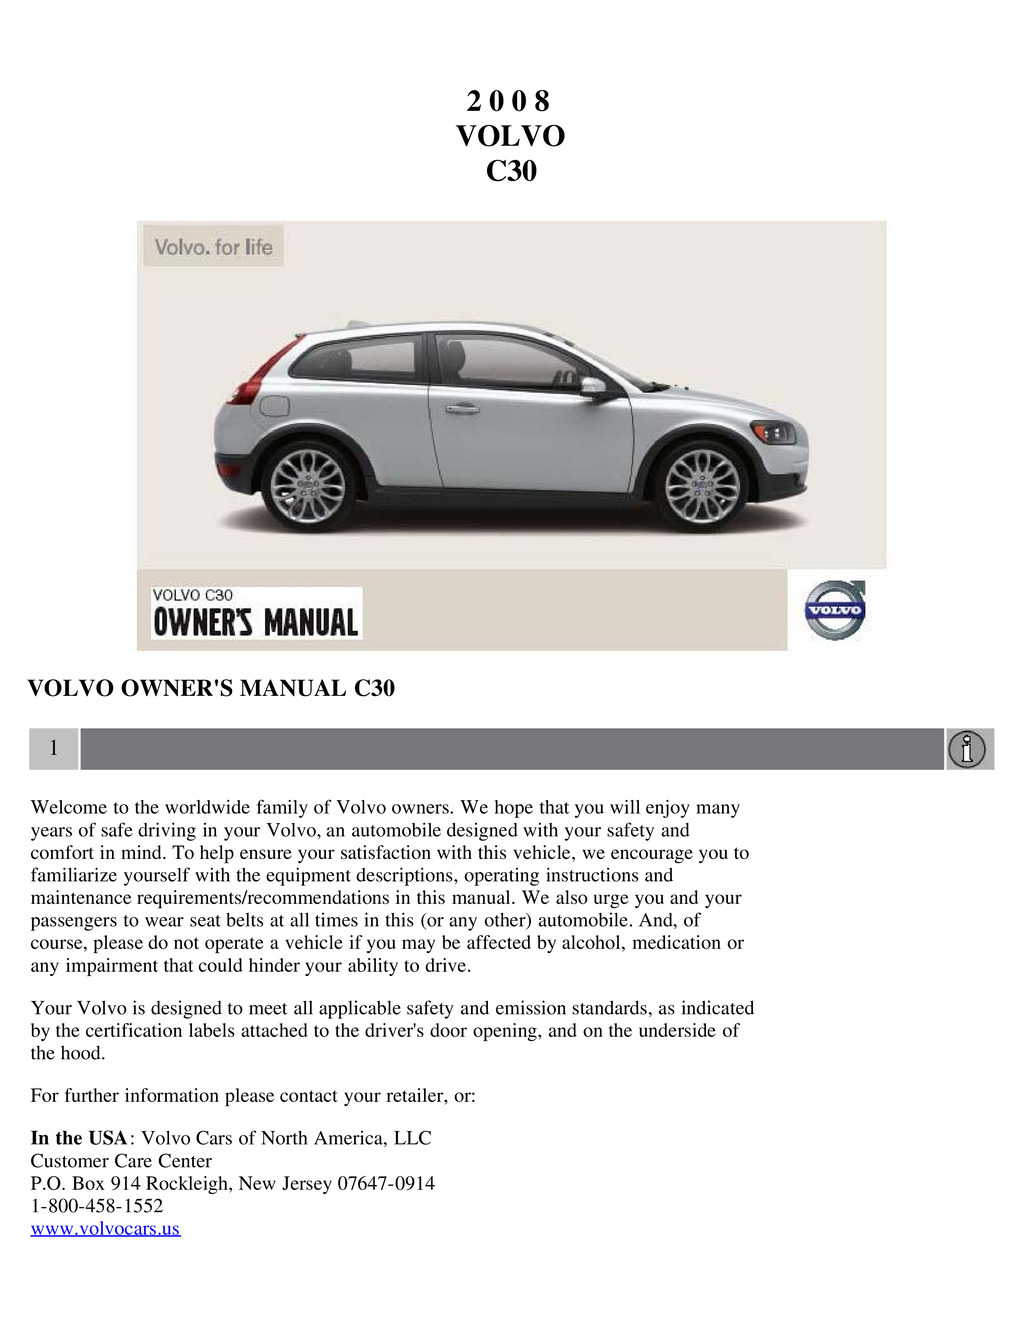 2008 Volvo C30 owners manual